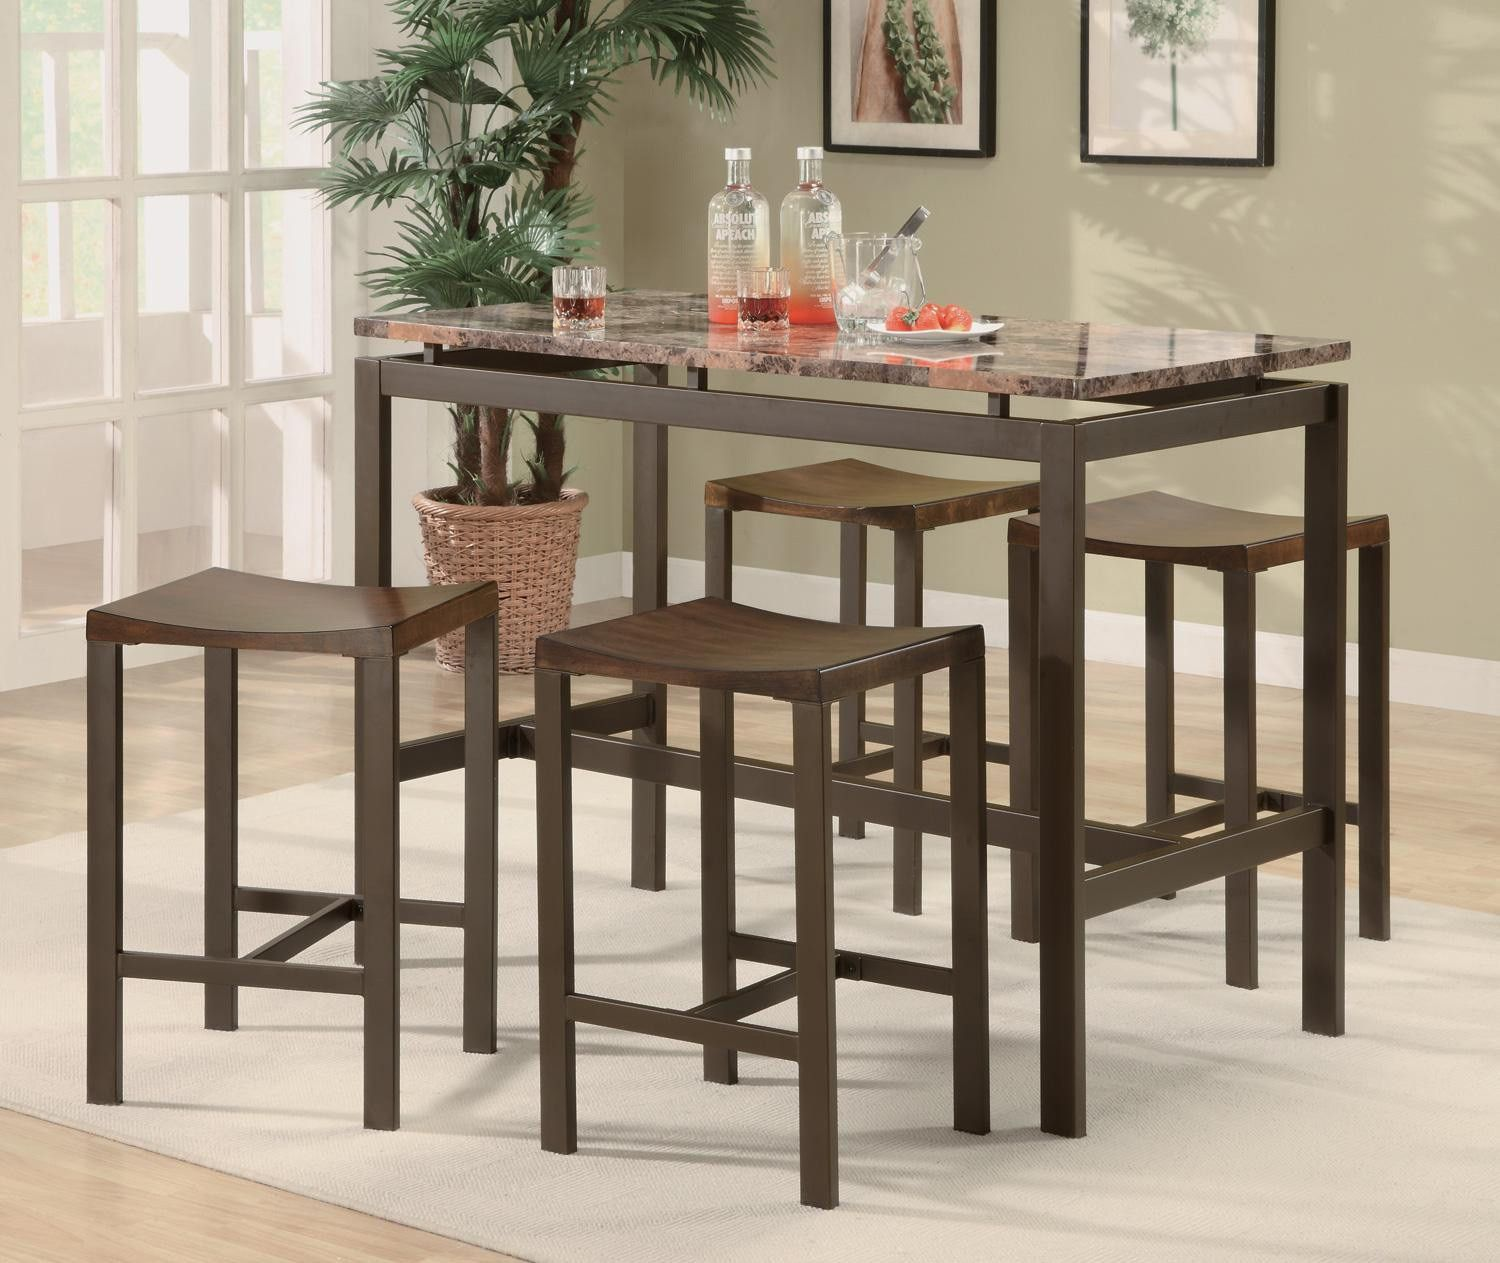 Tall kitchen table with bar stools kitchen design ideas images check more at http